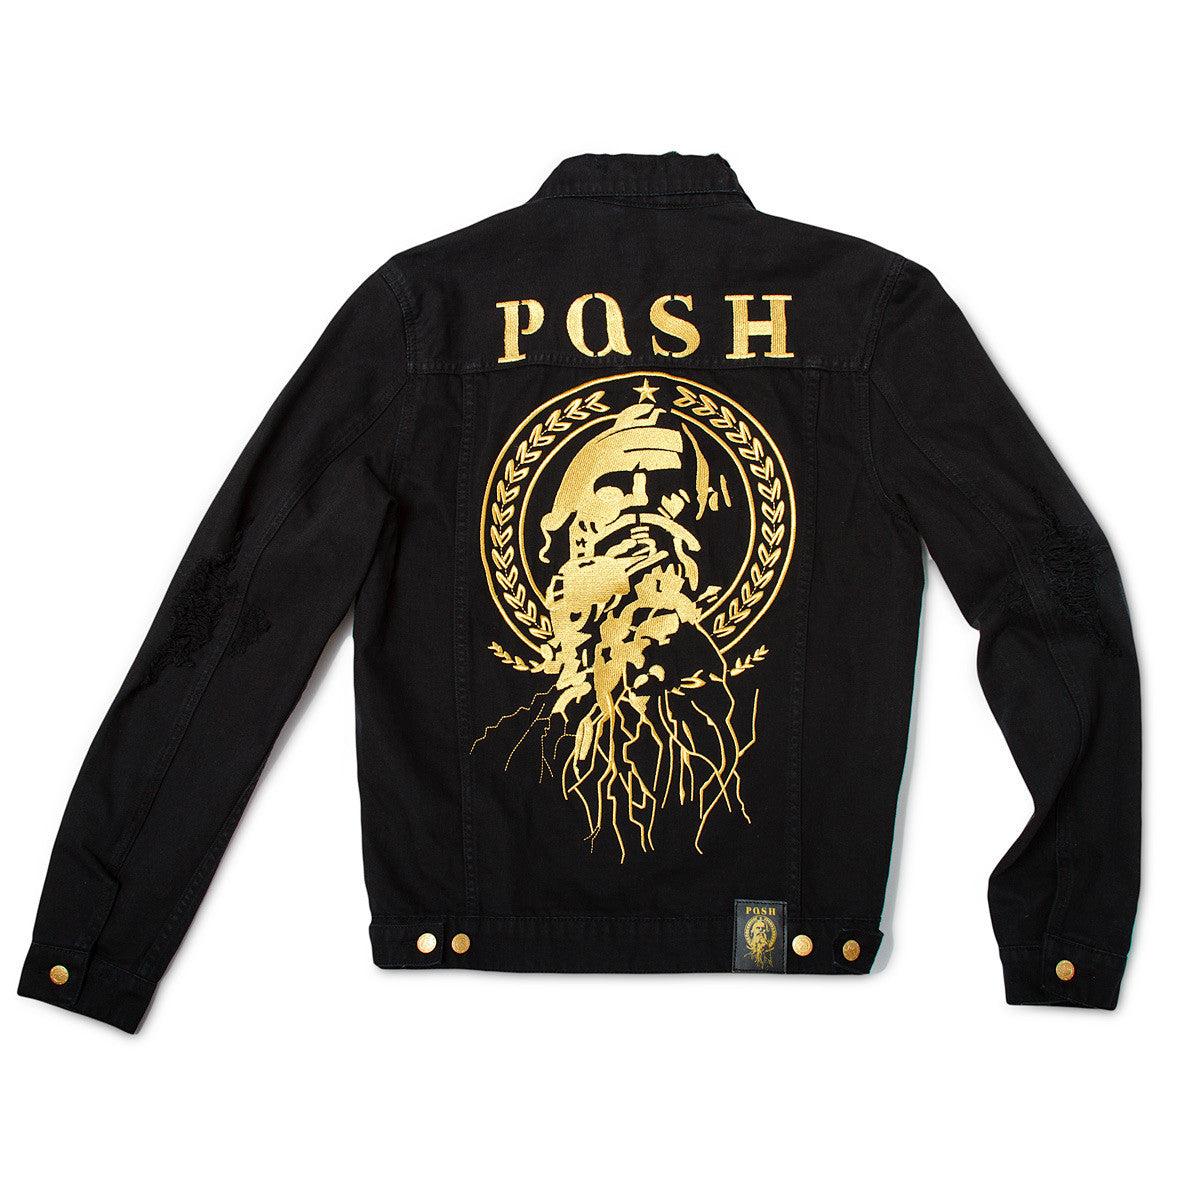 Posh by v coupon code